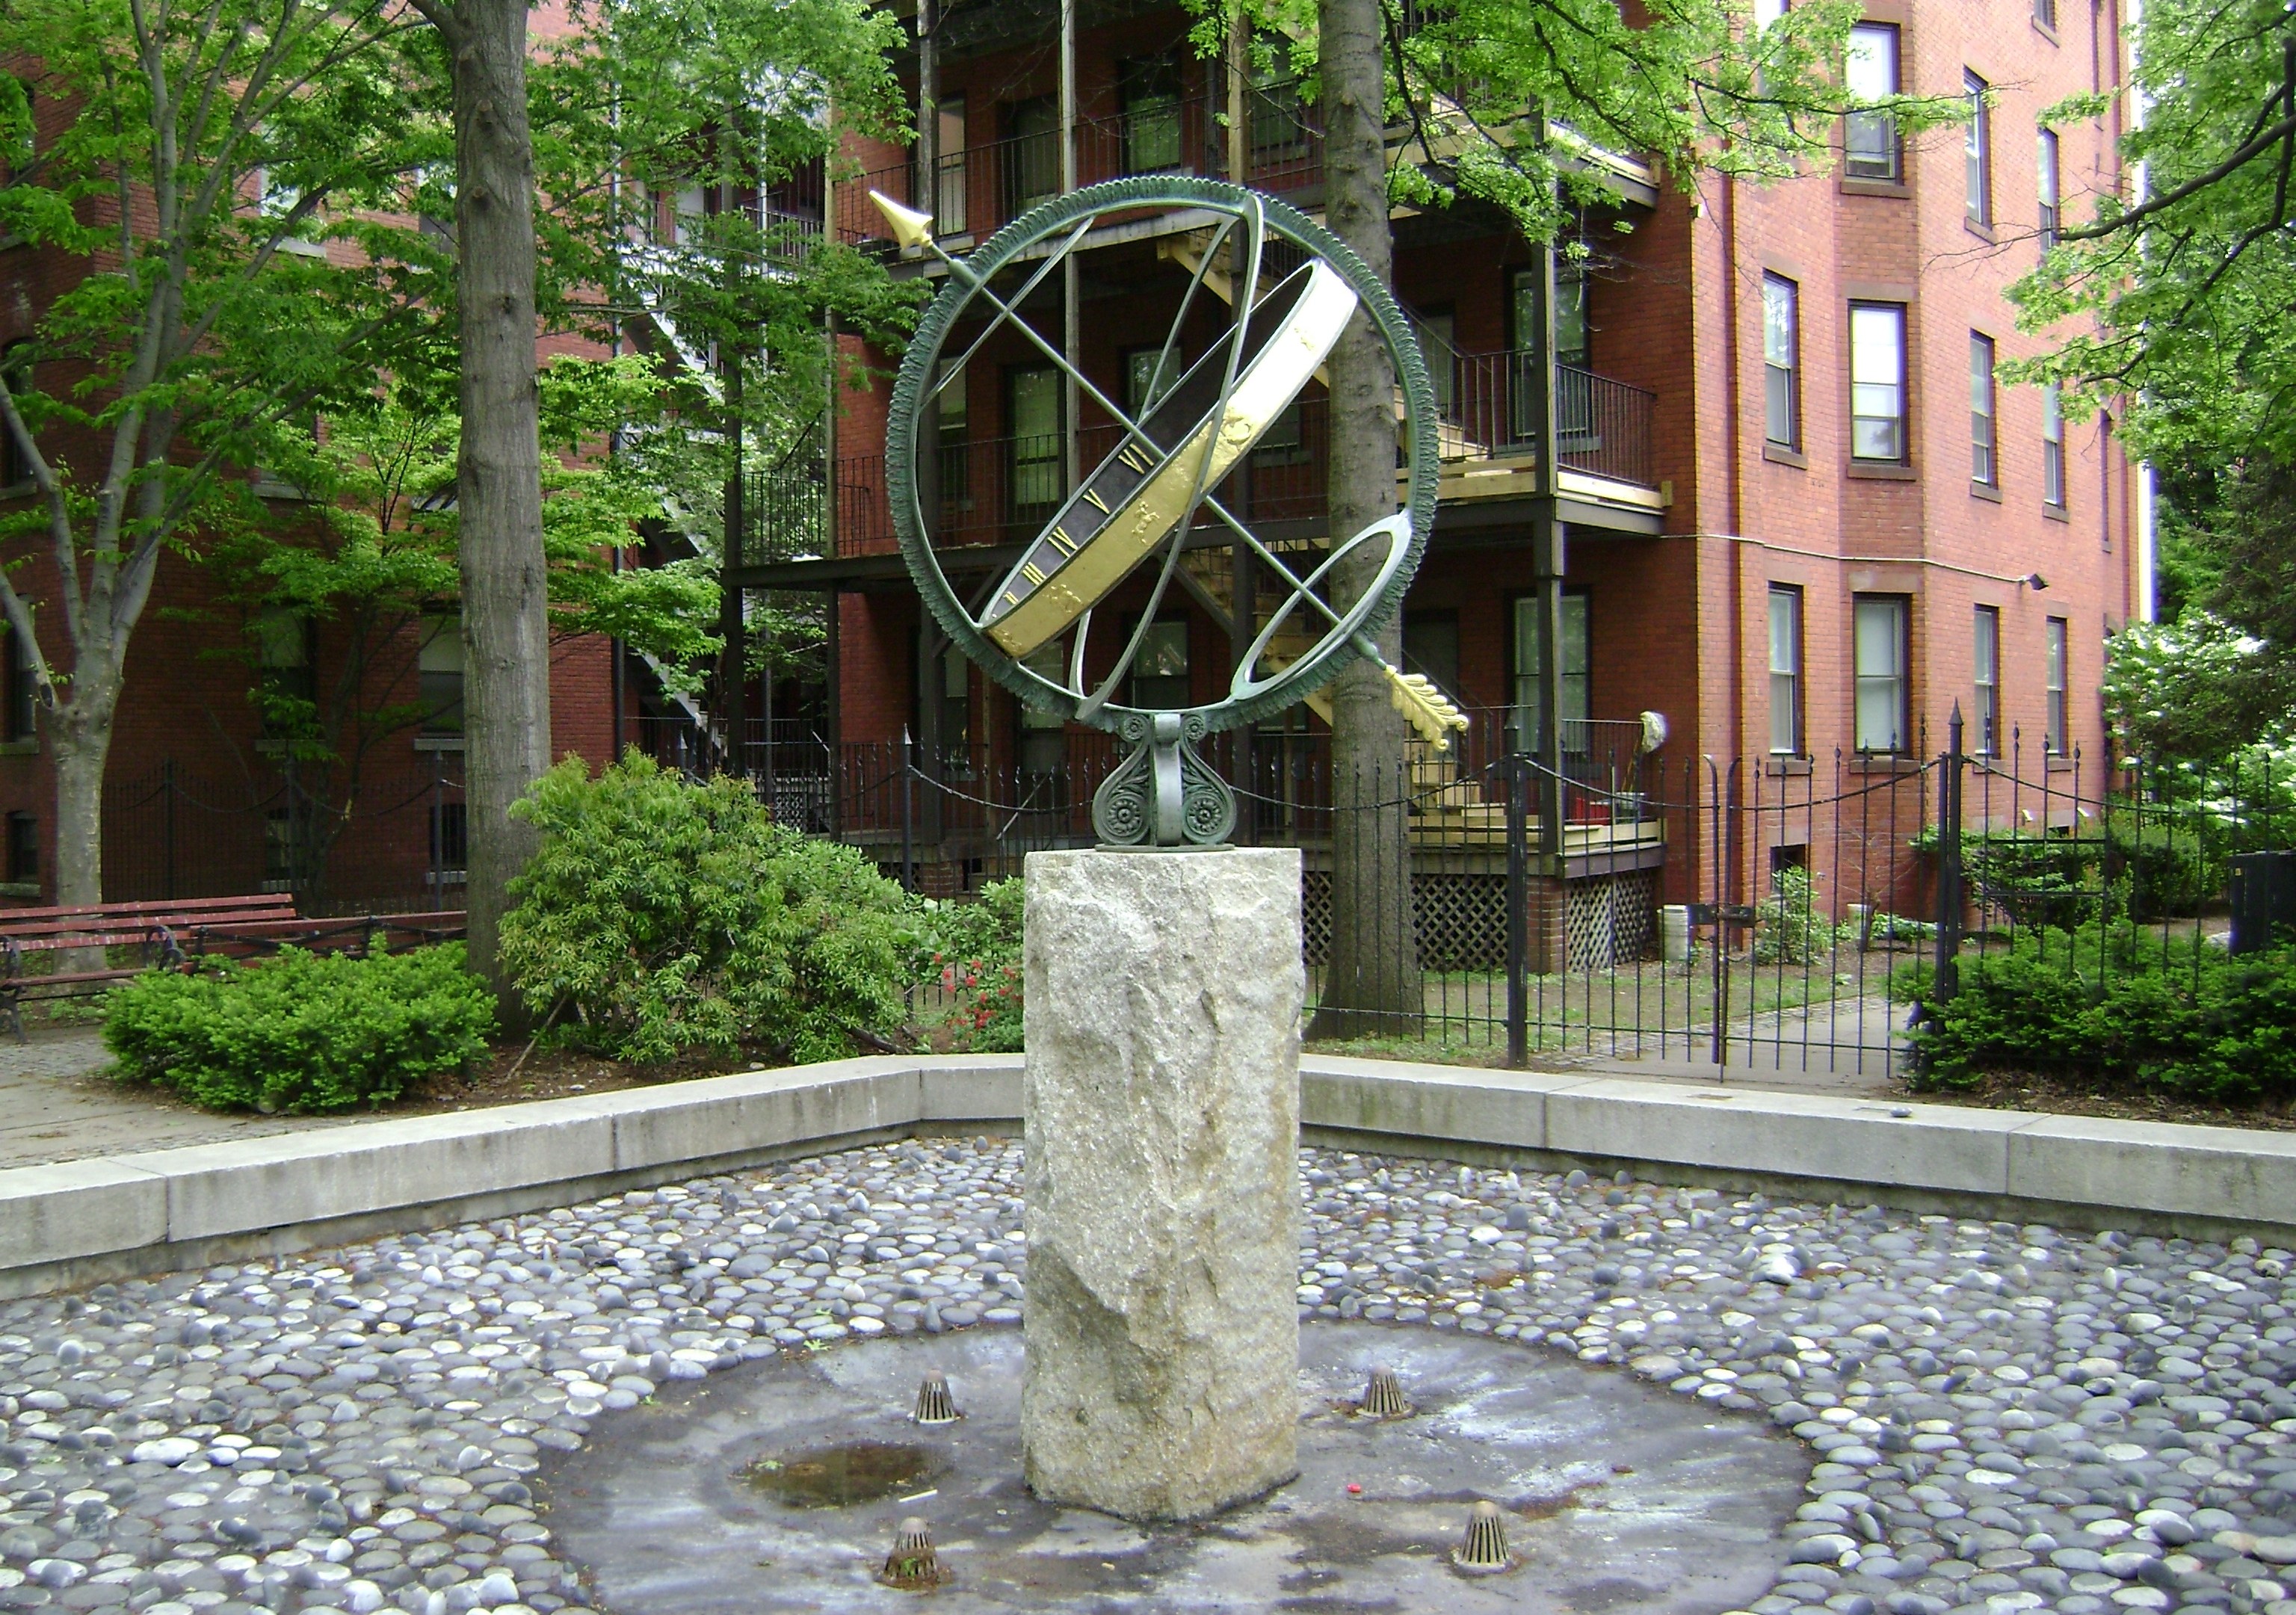 Sundials and Armillary Spheres Bring Art and Function to the Garden